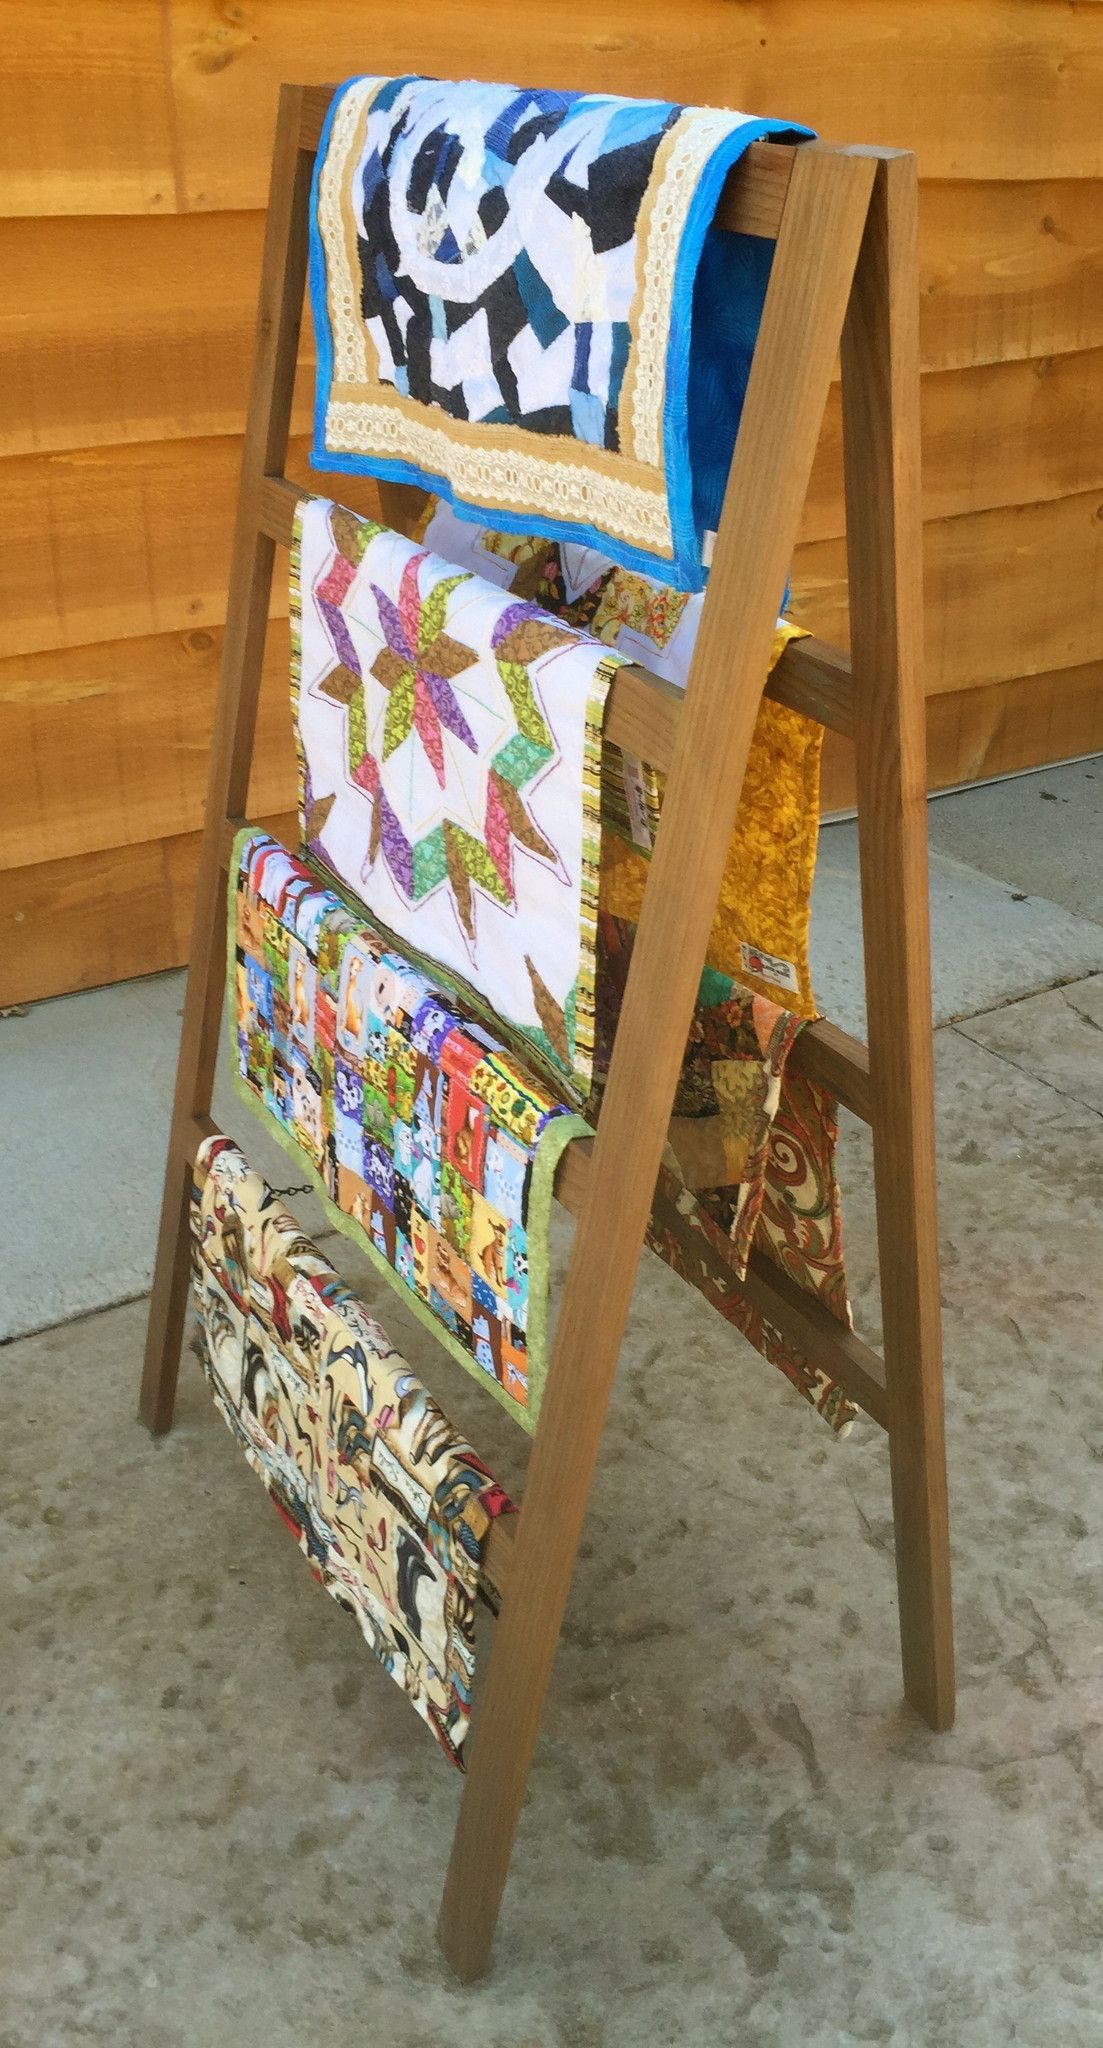 4 Tier Quilt Rack- A-Frame Ladder Style, Folds Flat For